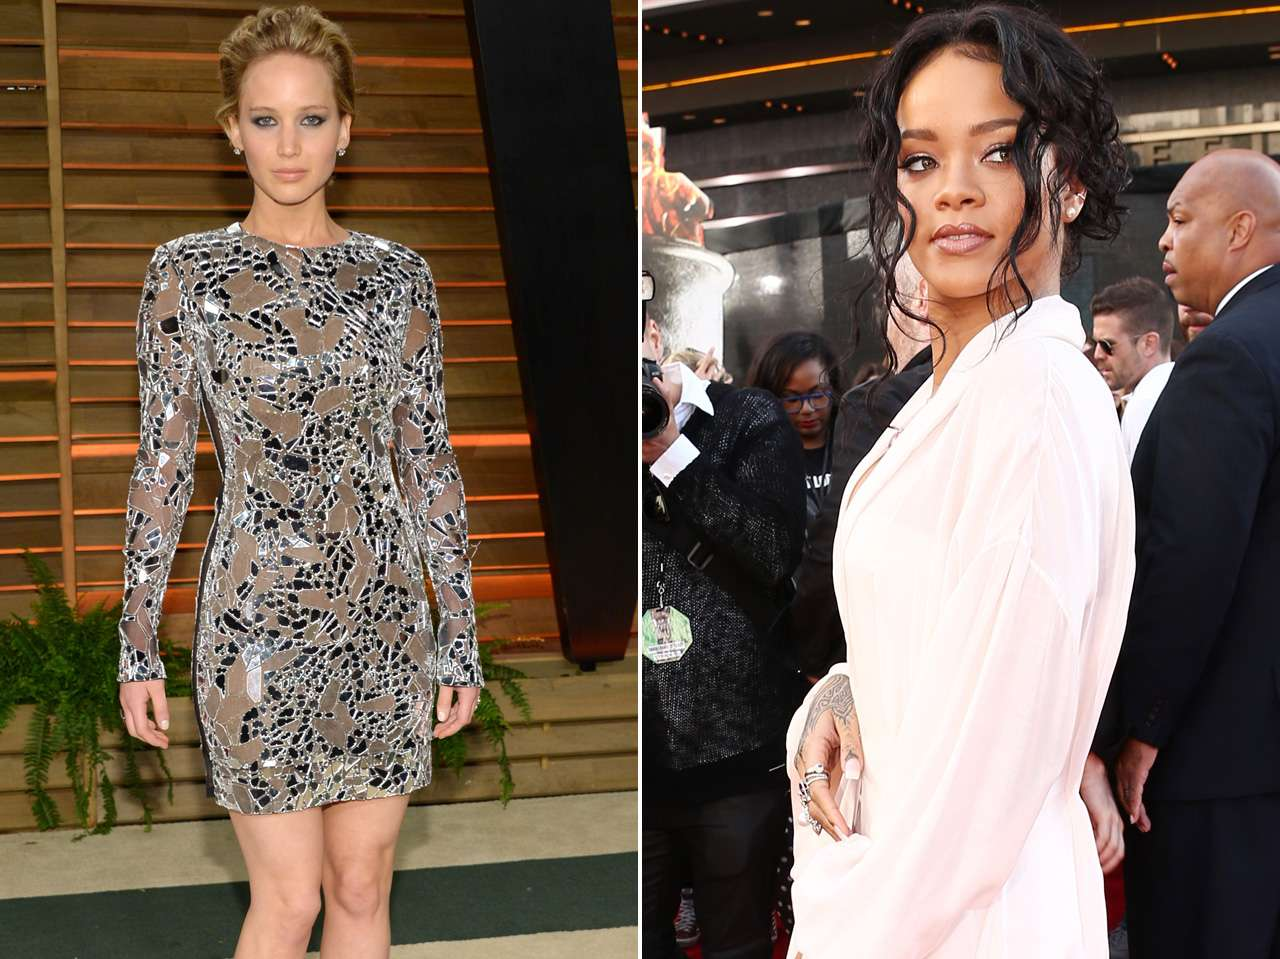 Google Jennifer Lawrence Rihanna Foto: AP / Getty Images